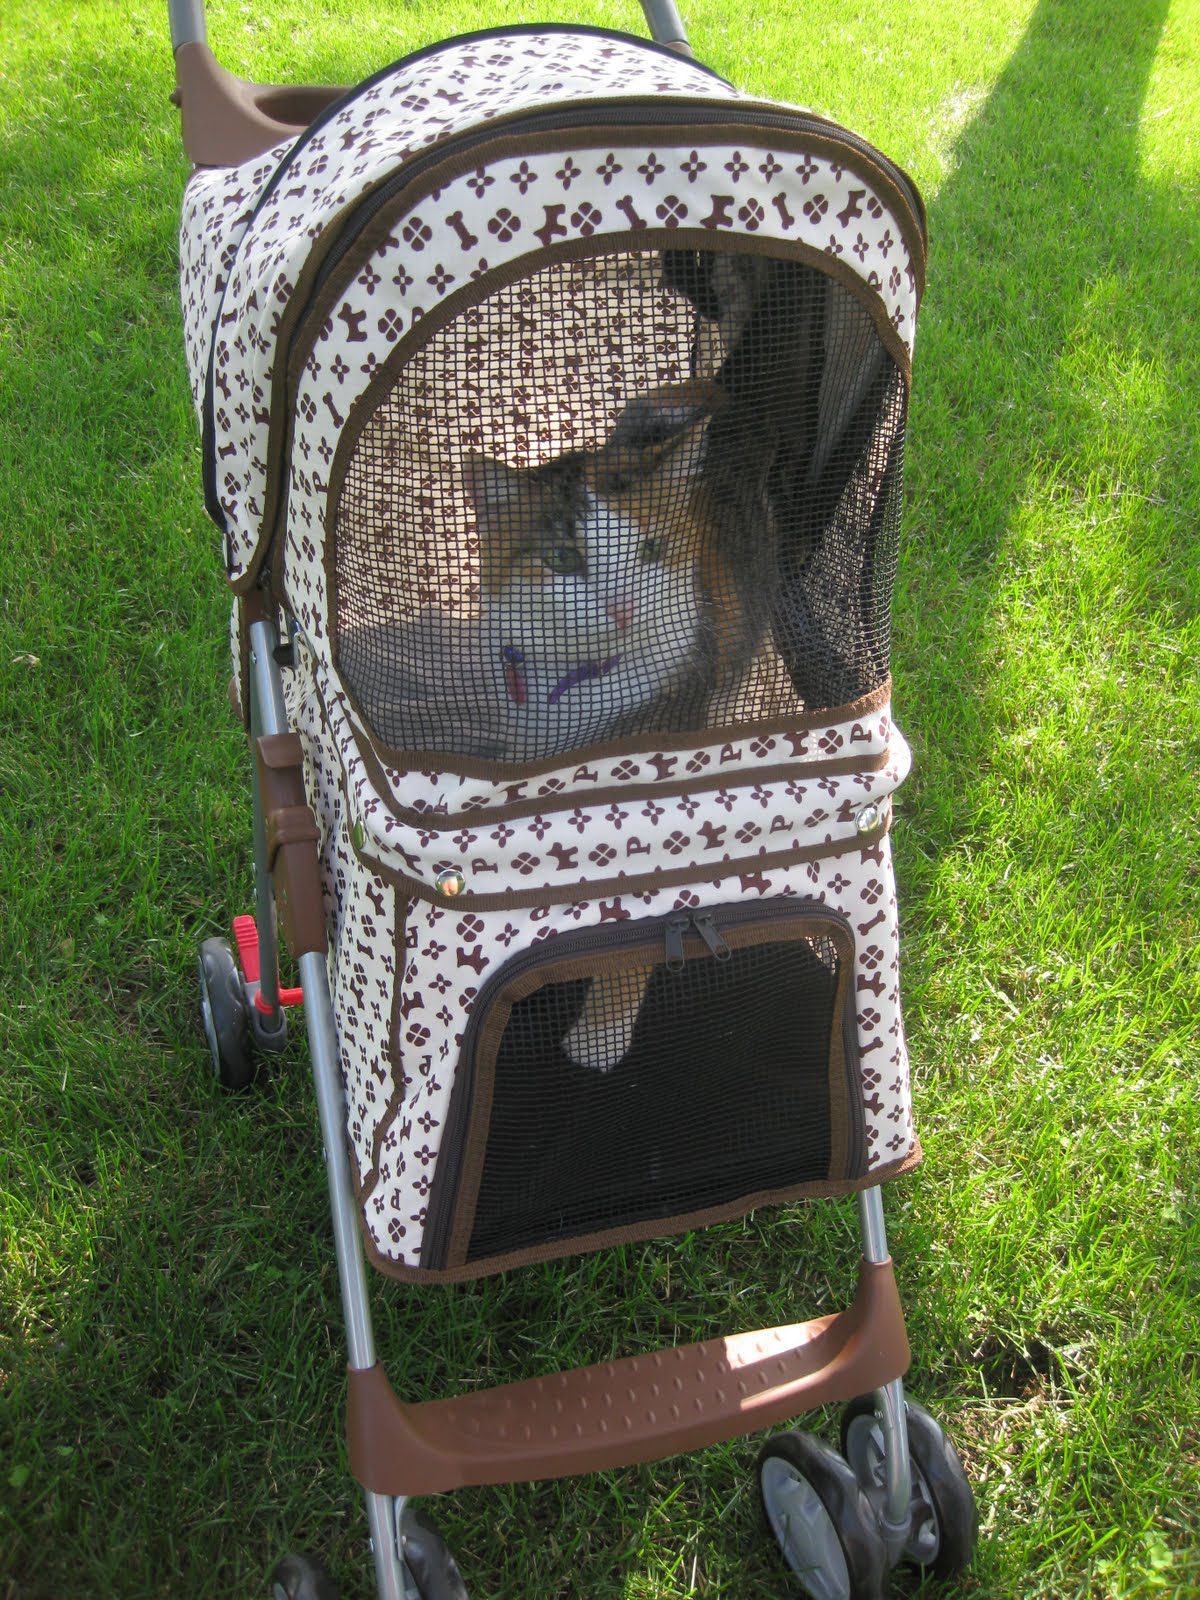 Catsparella: Cats on Wheels: Let's Talk Pet Strollers